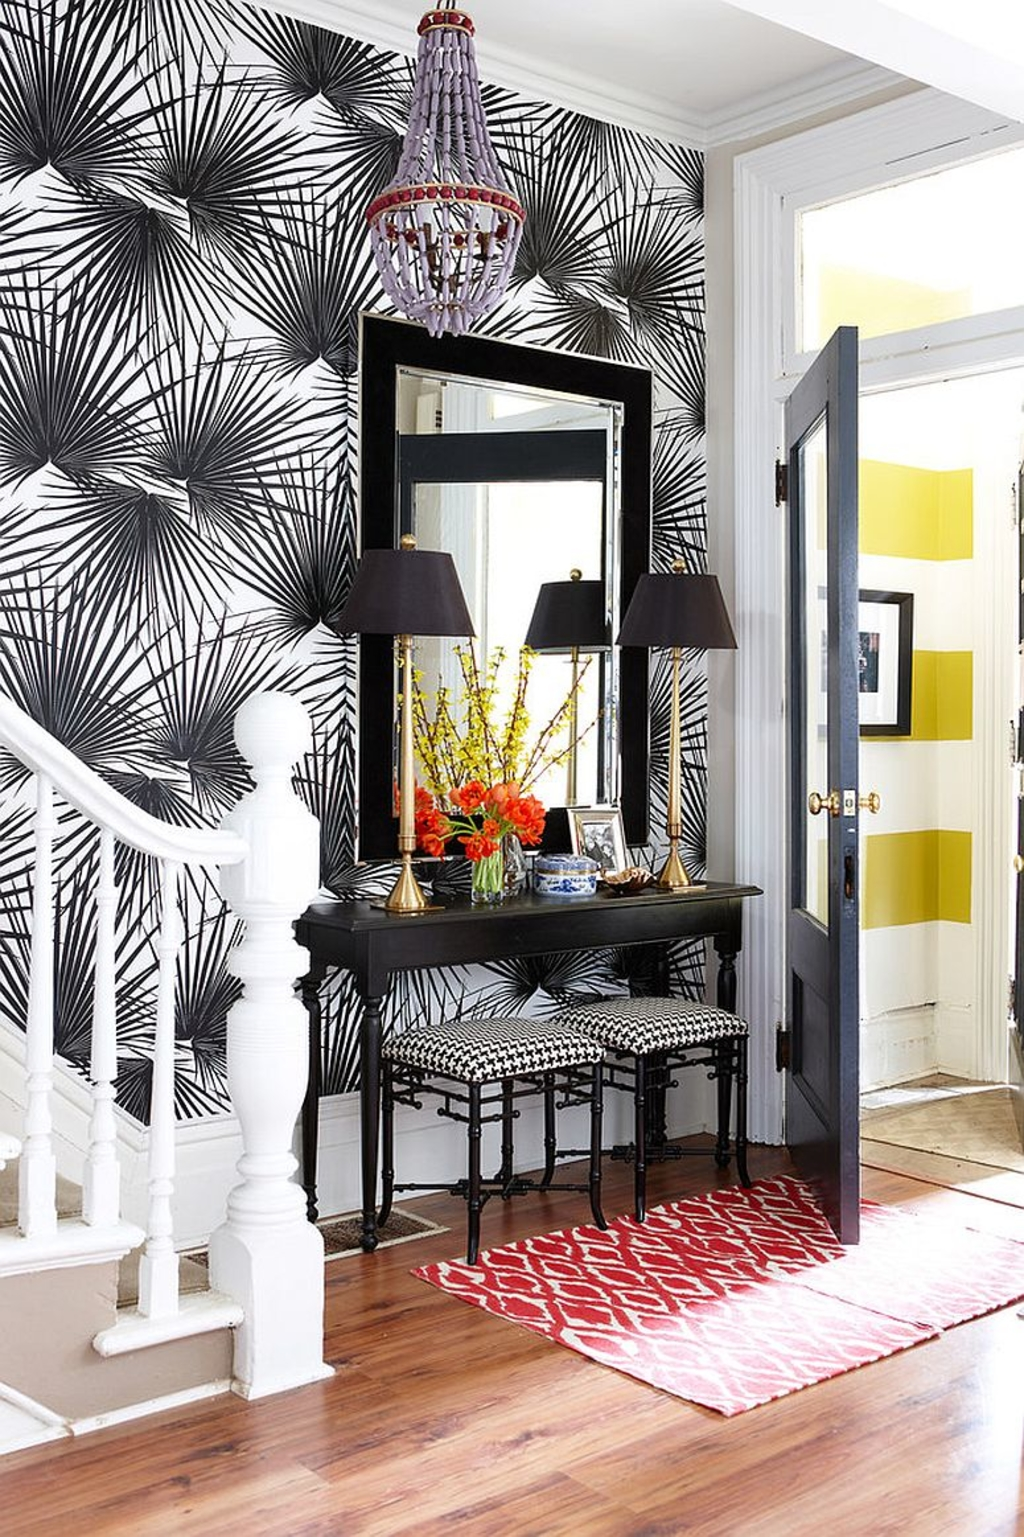 wallpaper-brings-glamour-to-the-entry-while-complementing-the-console-perfectly-25-gorgeous-entryways-clad-in-wallpaper.jpg